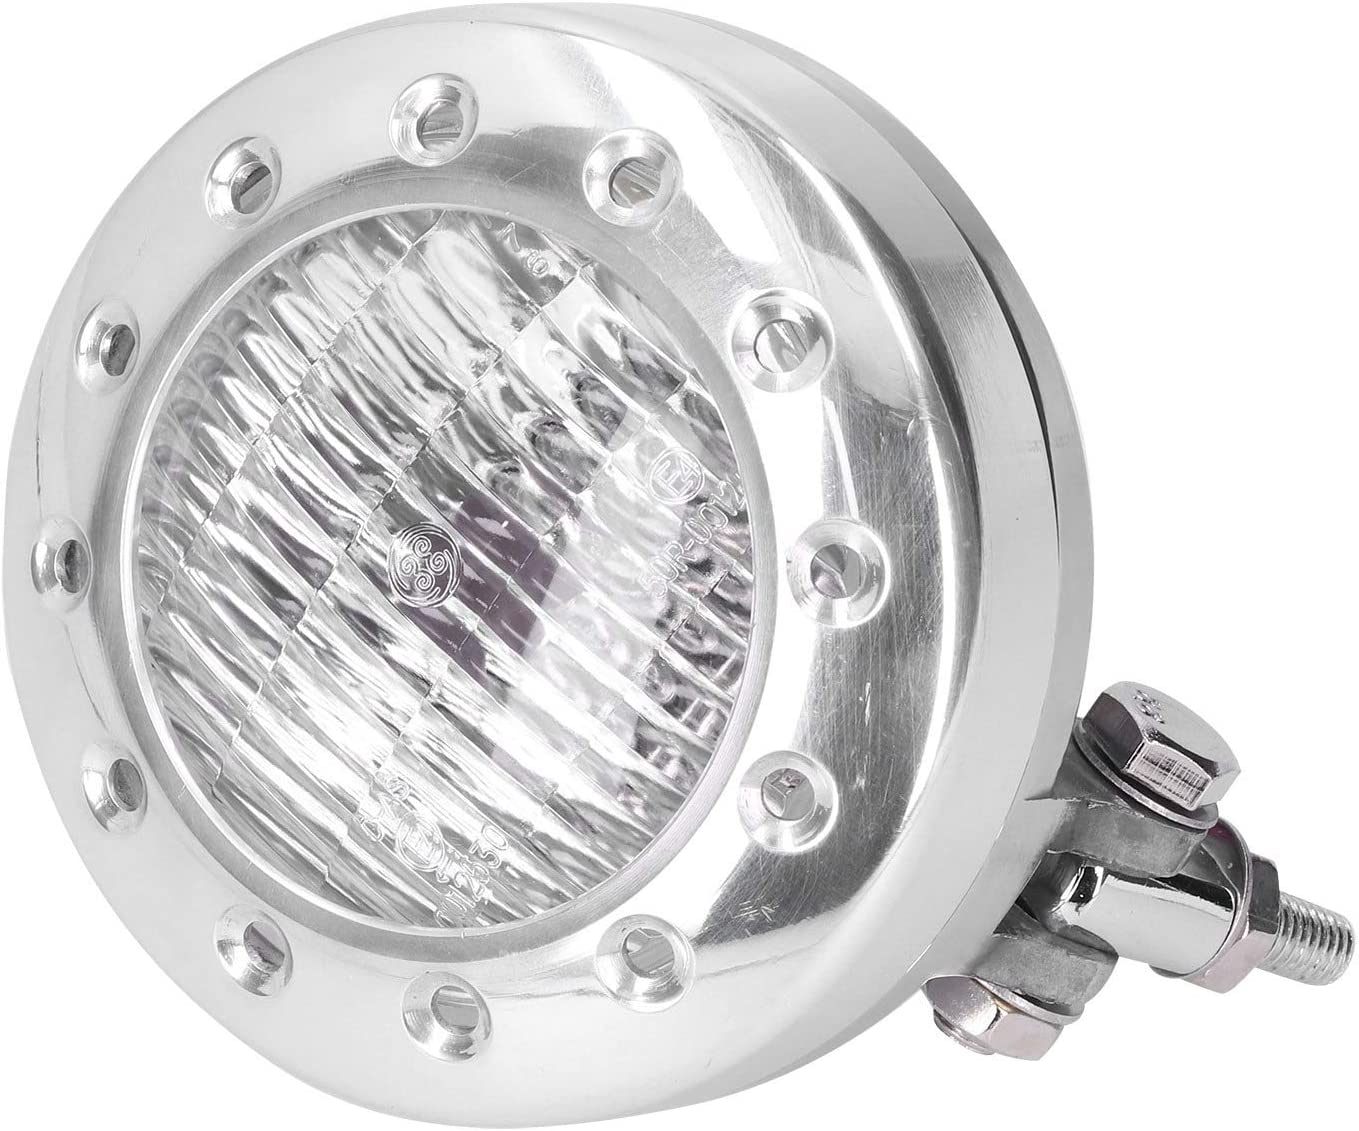 5Inch Motorcycle Headlight with Clear Lens 55W 12V Universal Max 70% OFF L Sale special price H